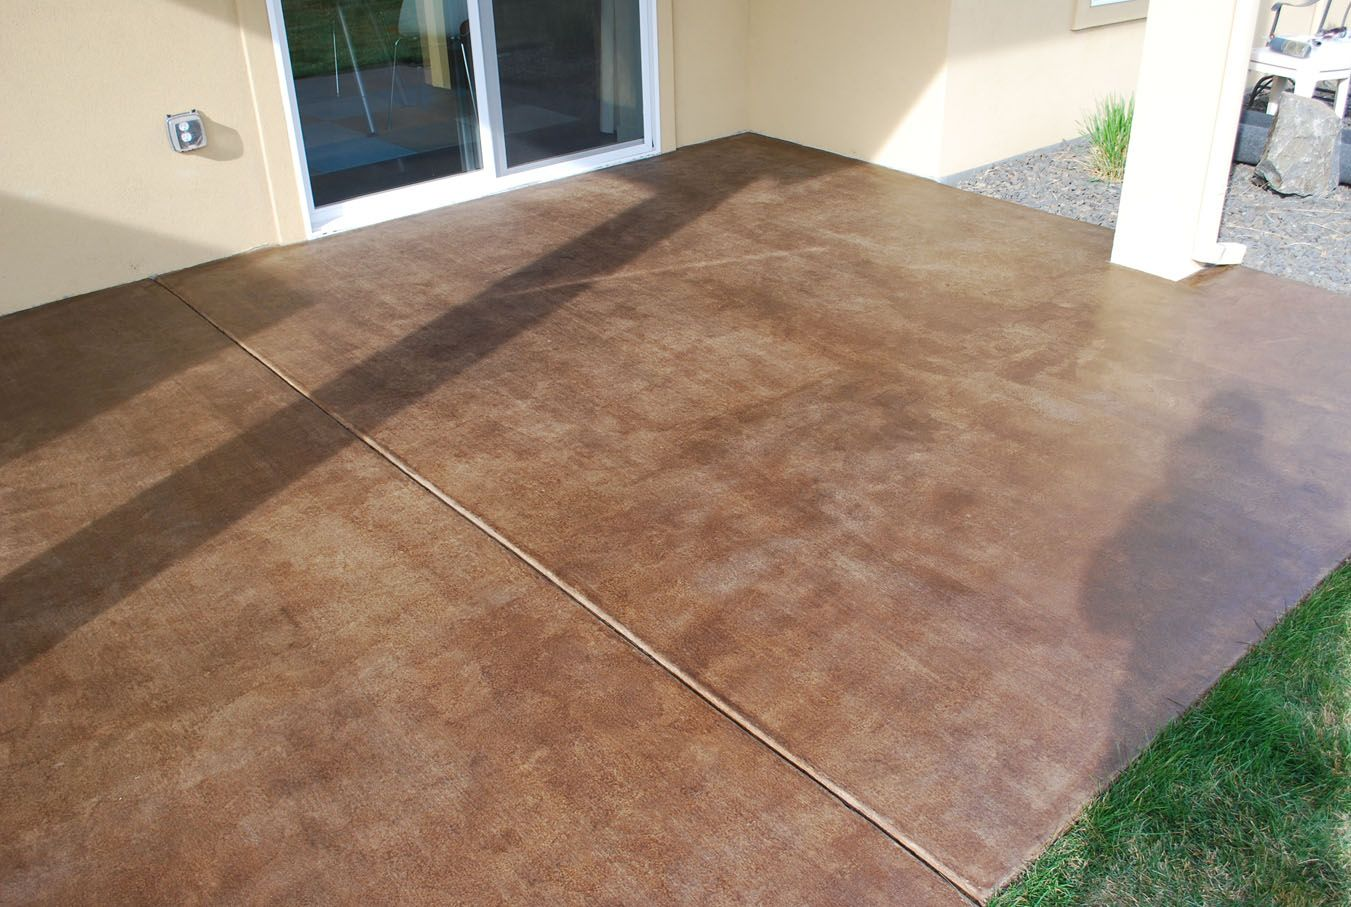 Diy project how to stain a concrete patio concrete for How to clean stained concrete floors